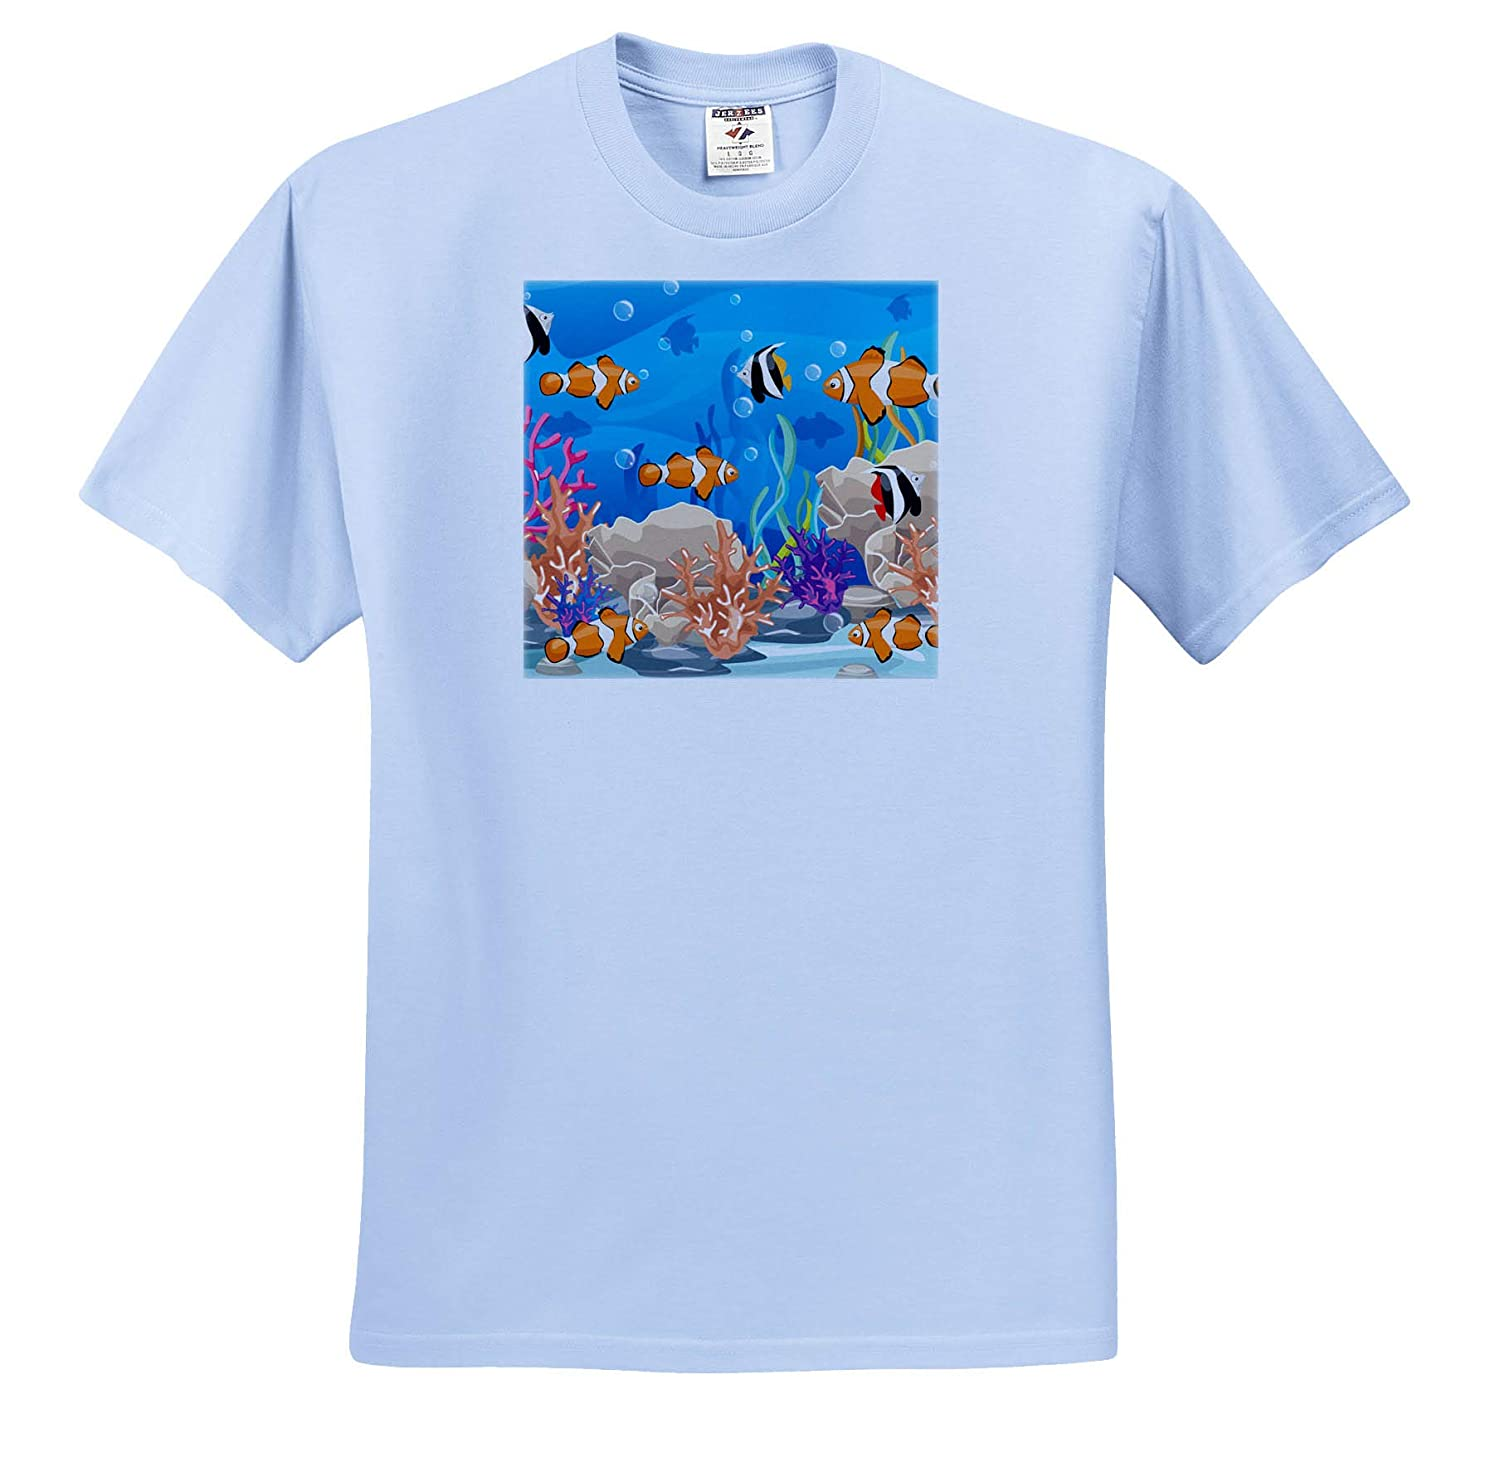 T-Shirts 3dRose Sven Herkenrath Animal Pretty Image of Underwater Life Fishes and Plants